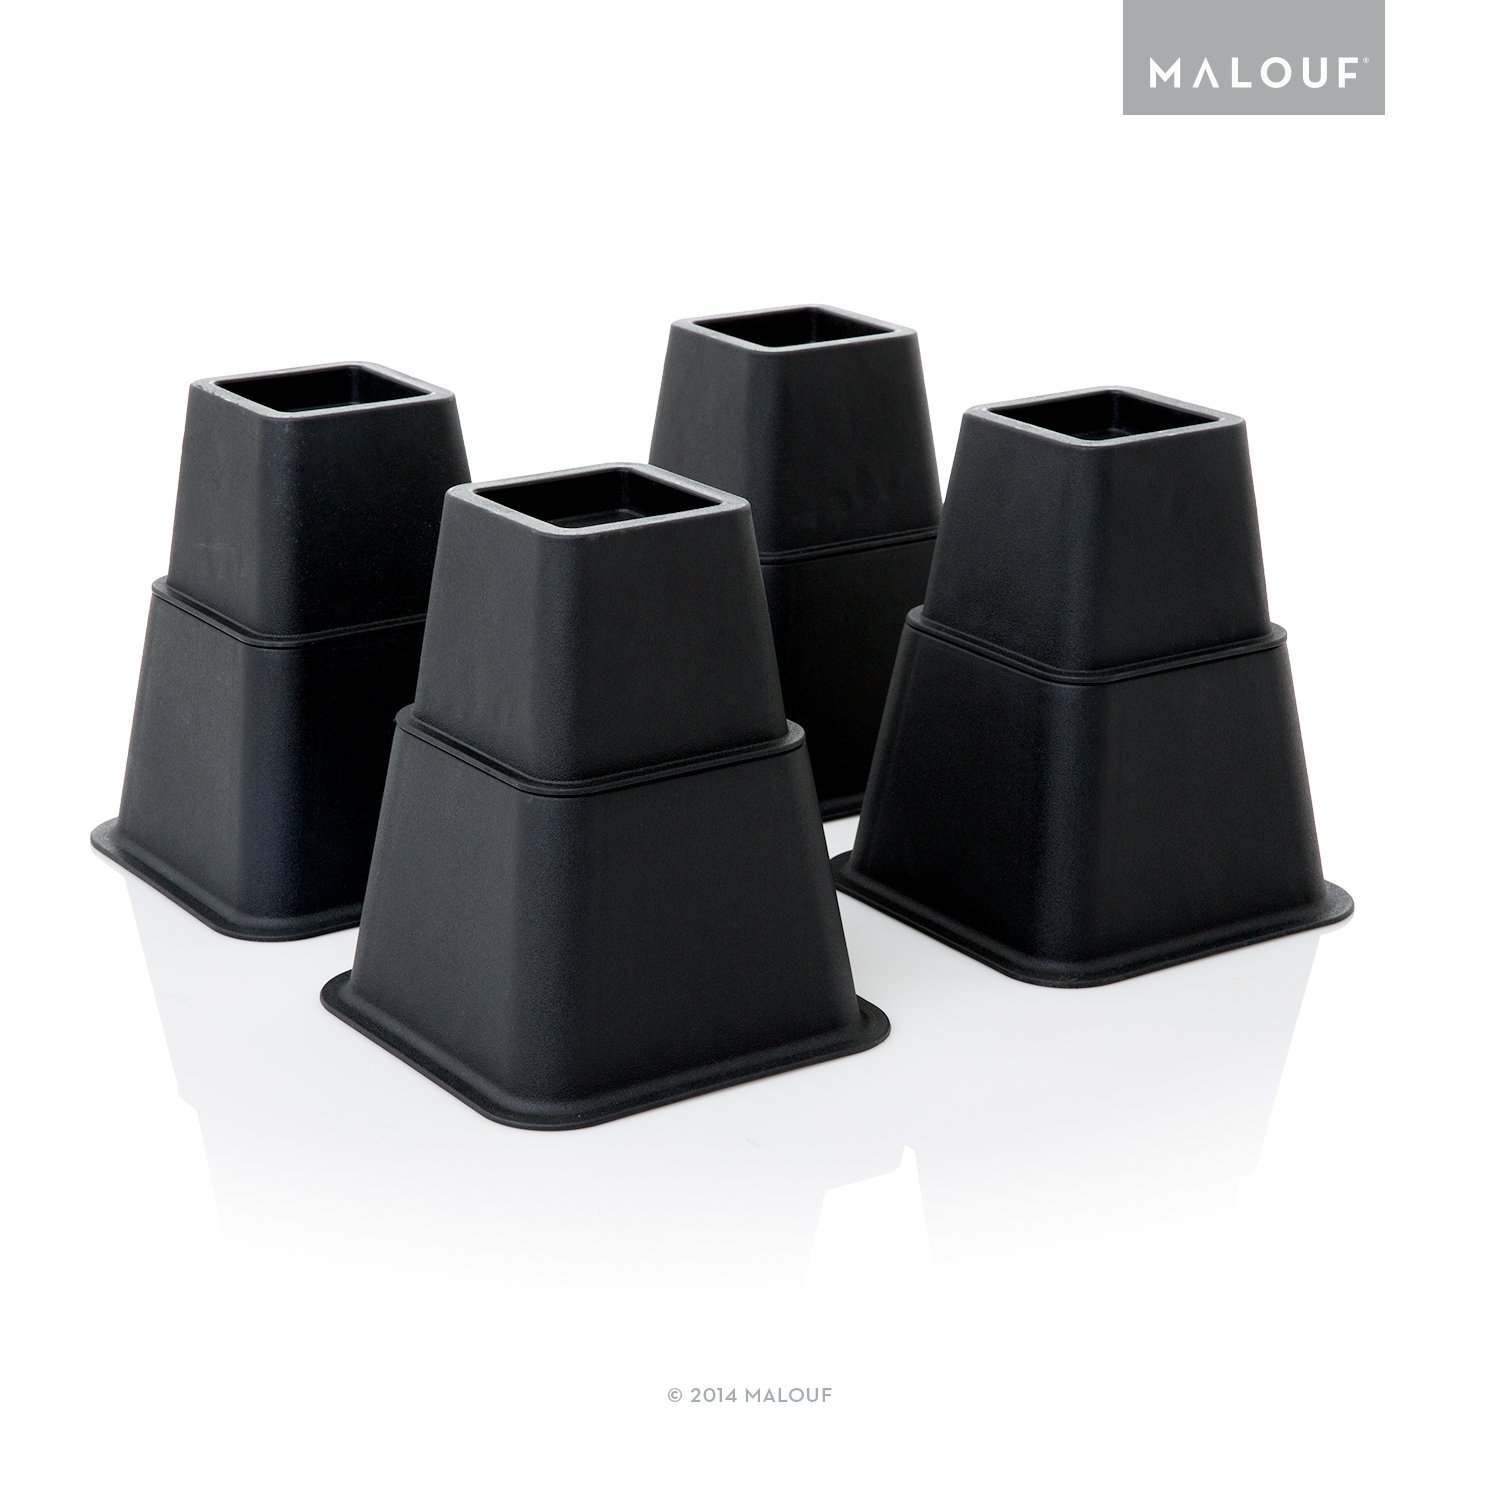 MALOUF Structures Heavy Duty Multi Height Bed Risers - 8 Piece Set - Adjustable to 8, 5 or 3 Inch Heights